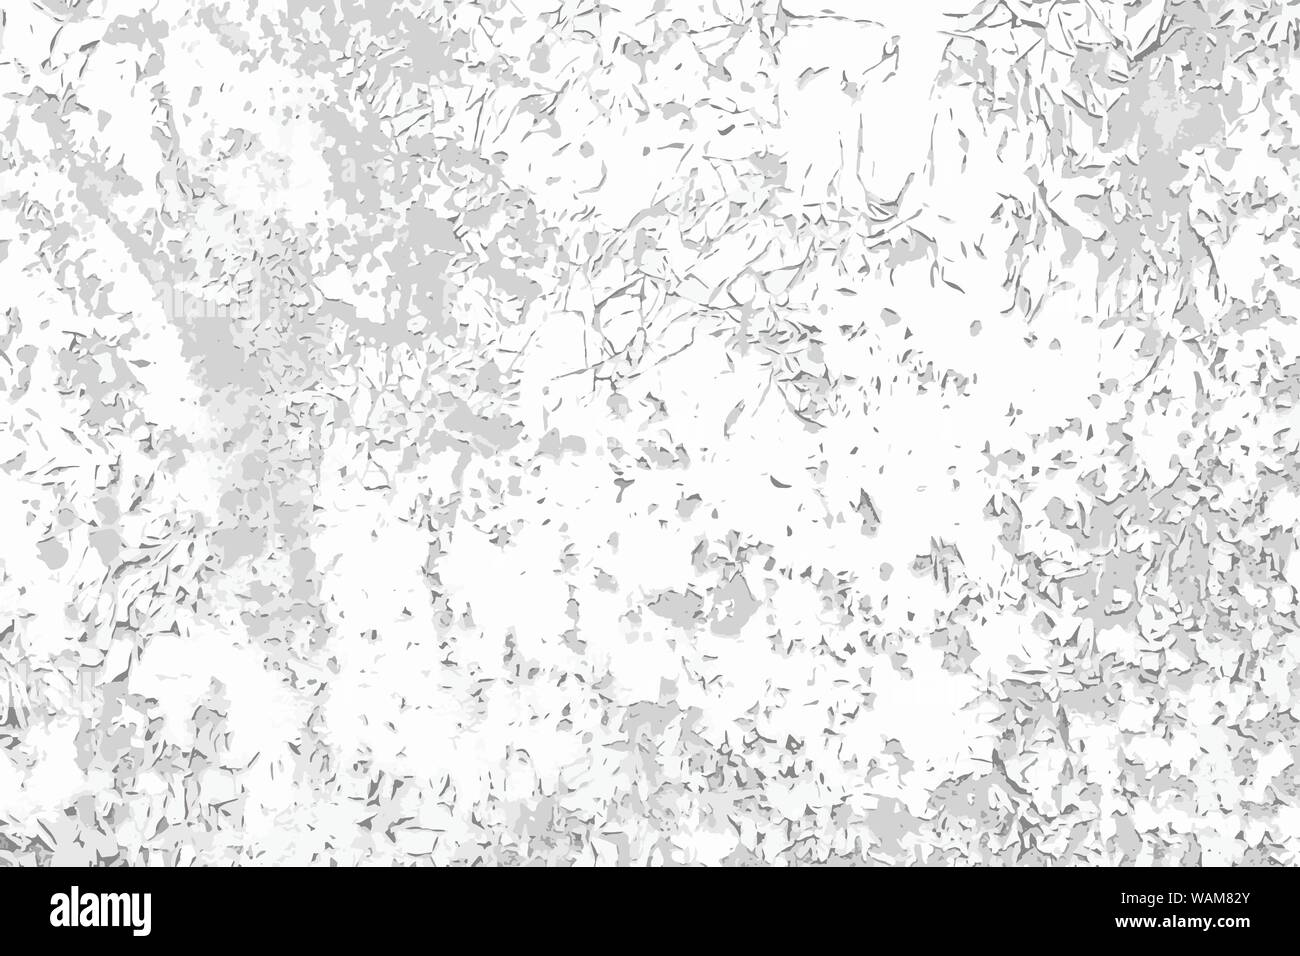 Scratch Cracked Paint Vector Black And White Background